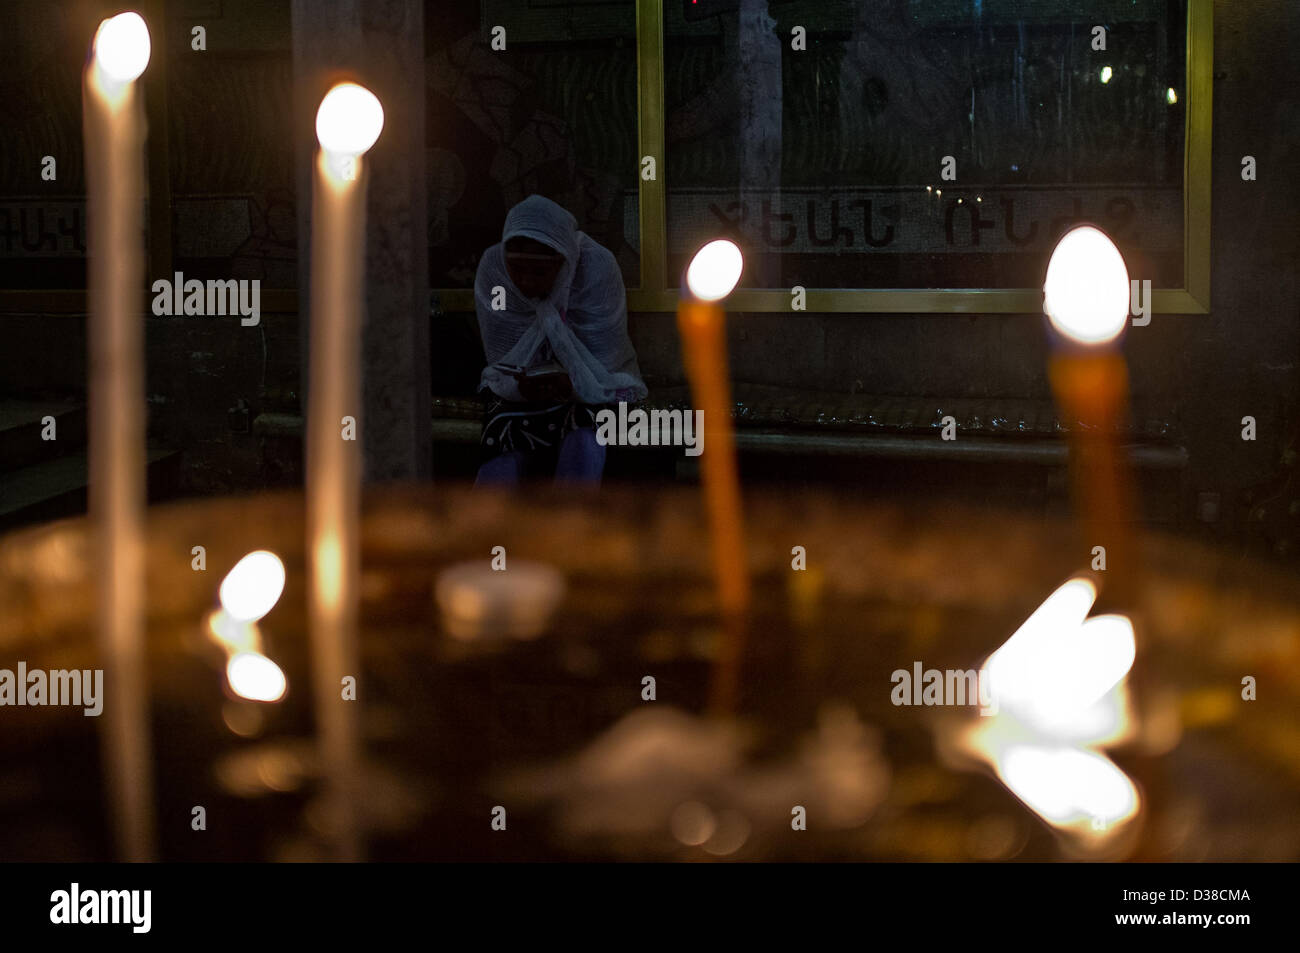 Jerusalem, Israel. 13th February 2013. A woman prays silently in the Church of the Holy Sepulchre on Ash Wednesday. Stock Photo